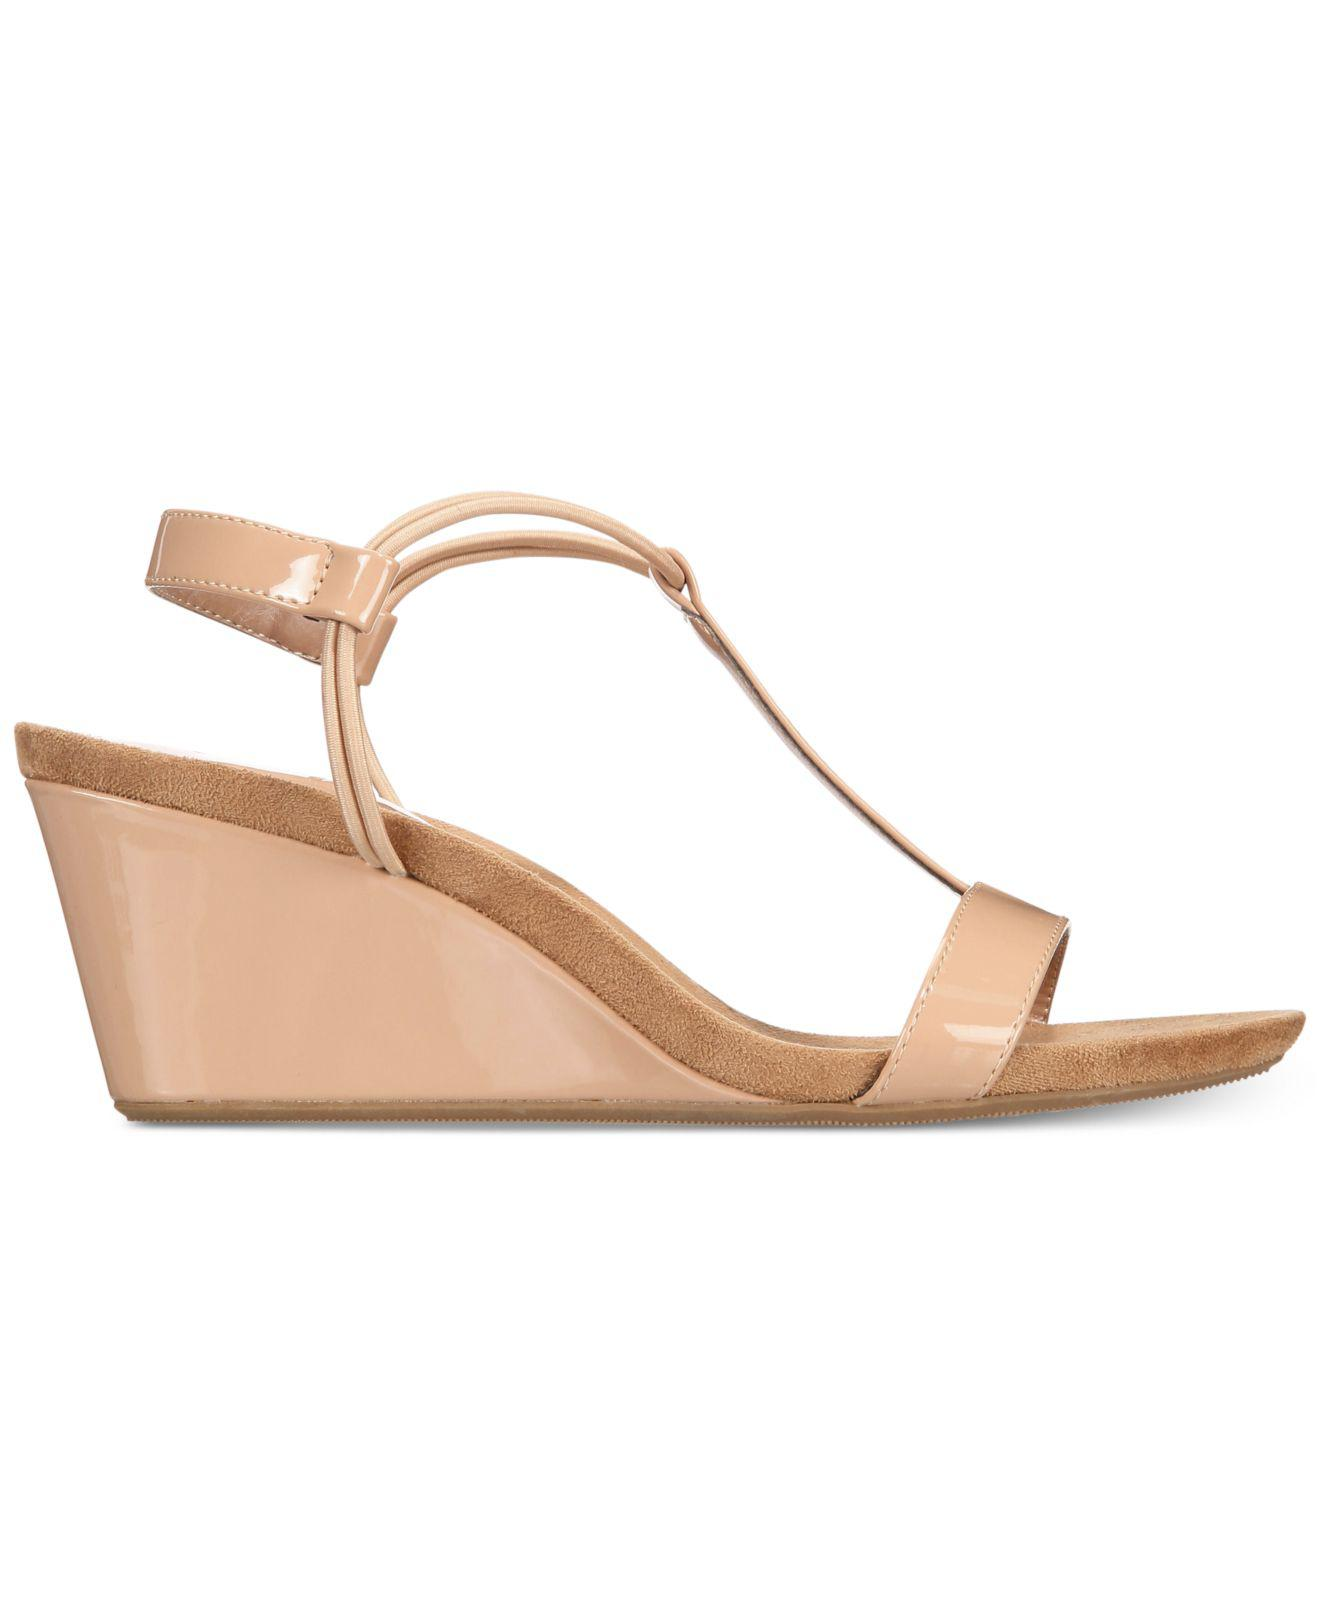 1fff997bf5 Style & Co. Mulan Wedge Sandals, Created For Macy's in Natural - Lyst